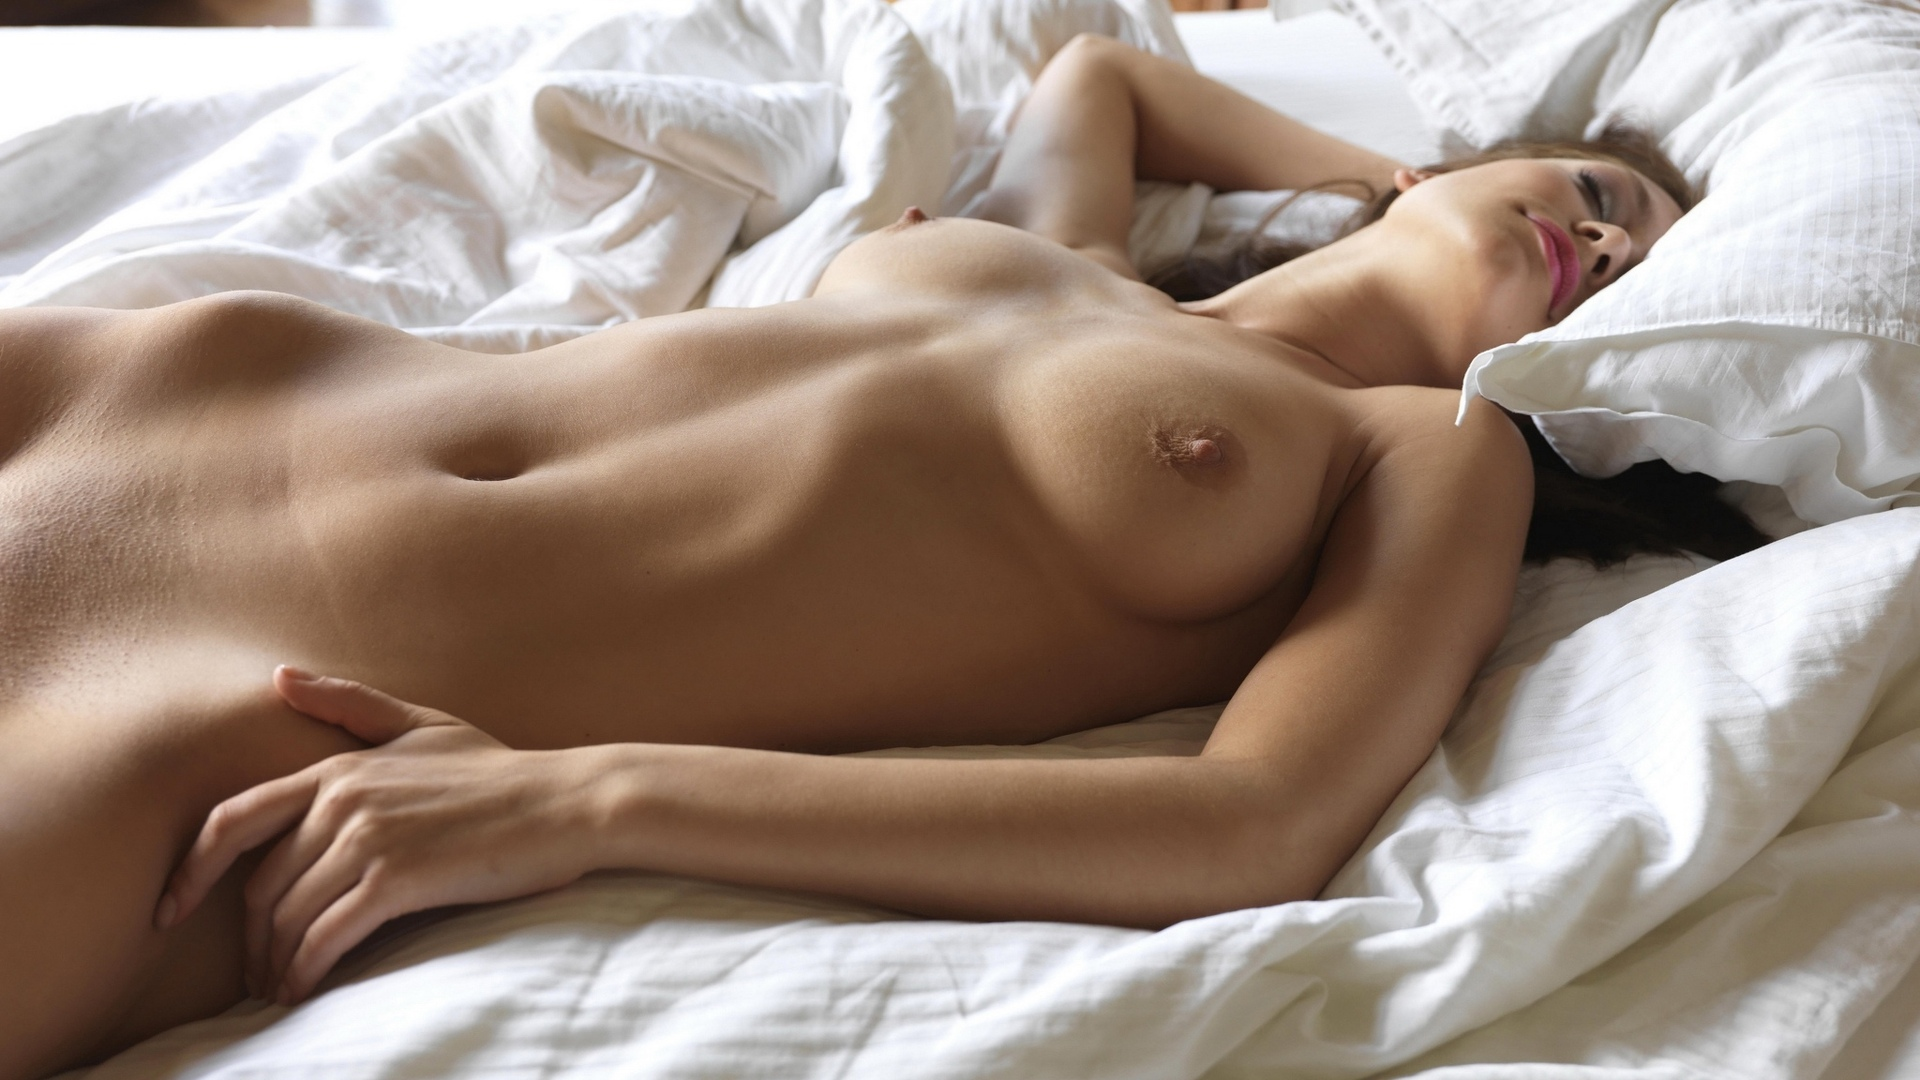 opening-nud-girl-pusy-in-sleep